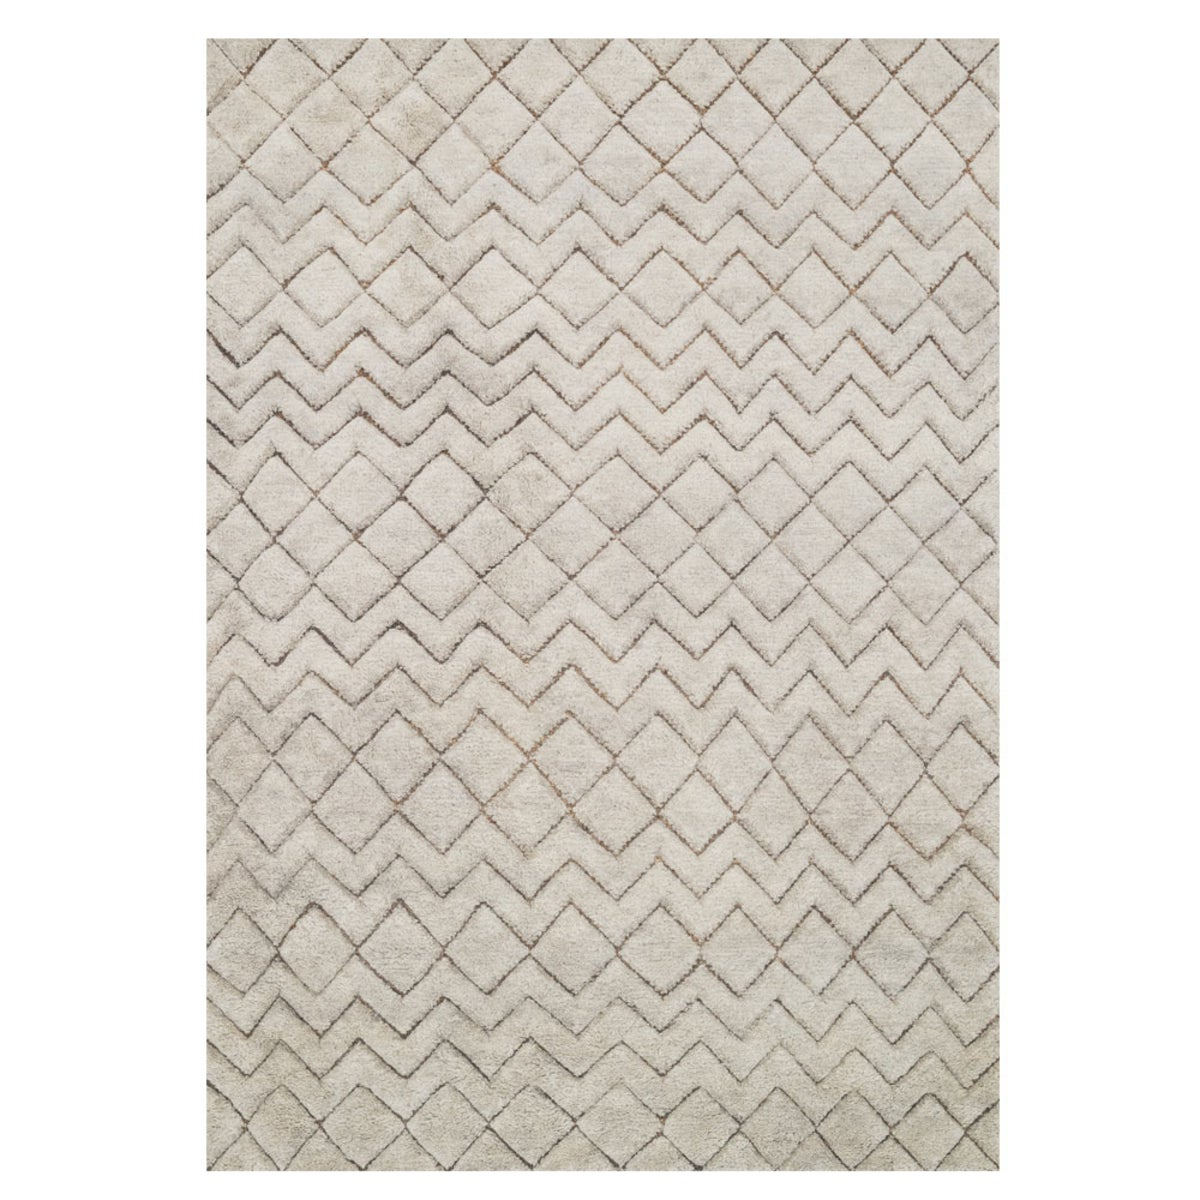 "Loloi Tanzania Just Zig Rug in Ivory - 5'6 x 8'6"" - Stone"